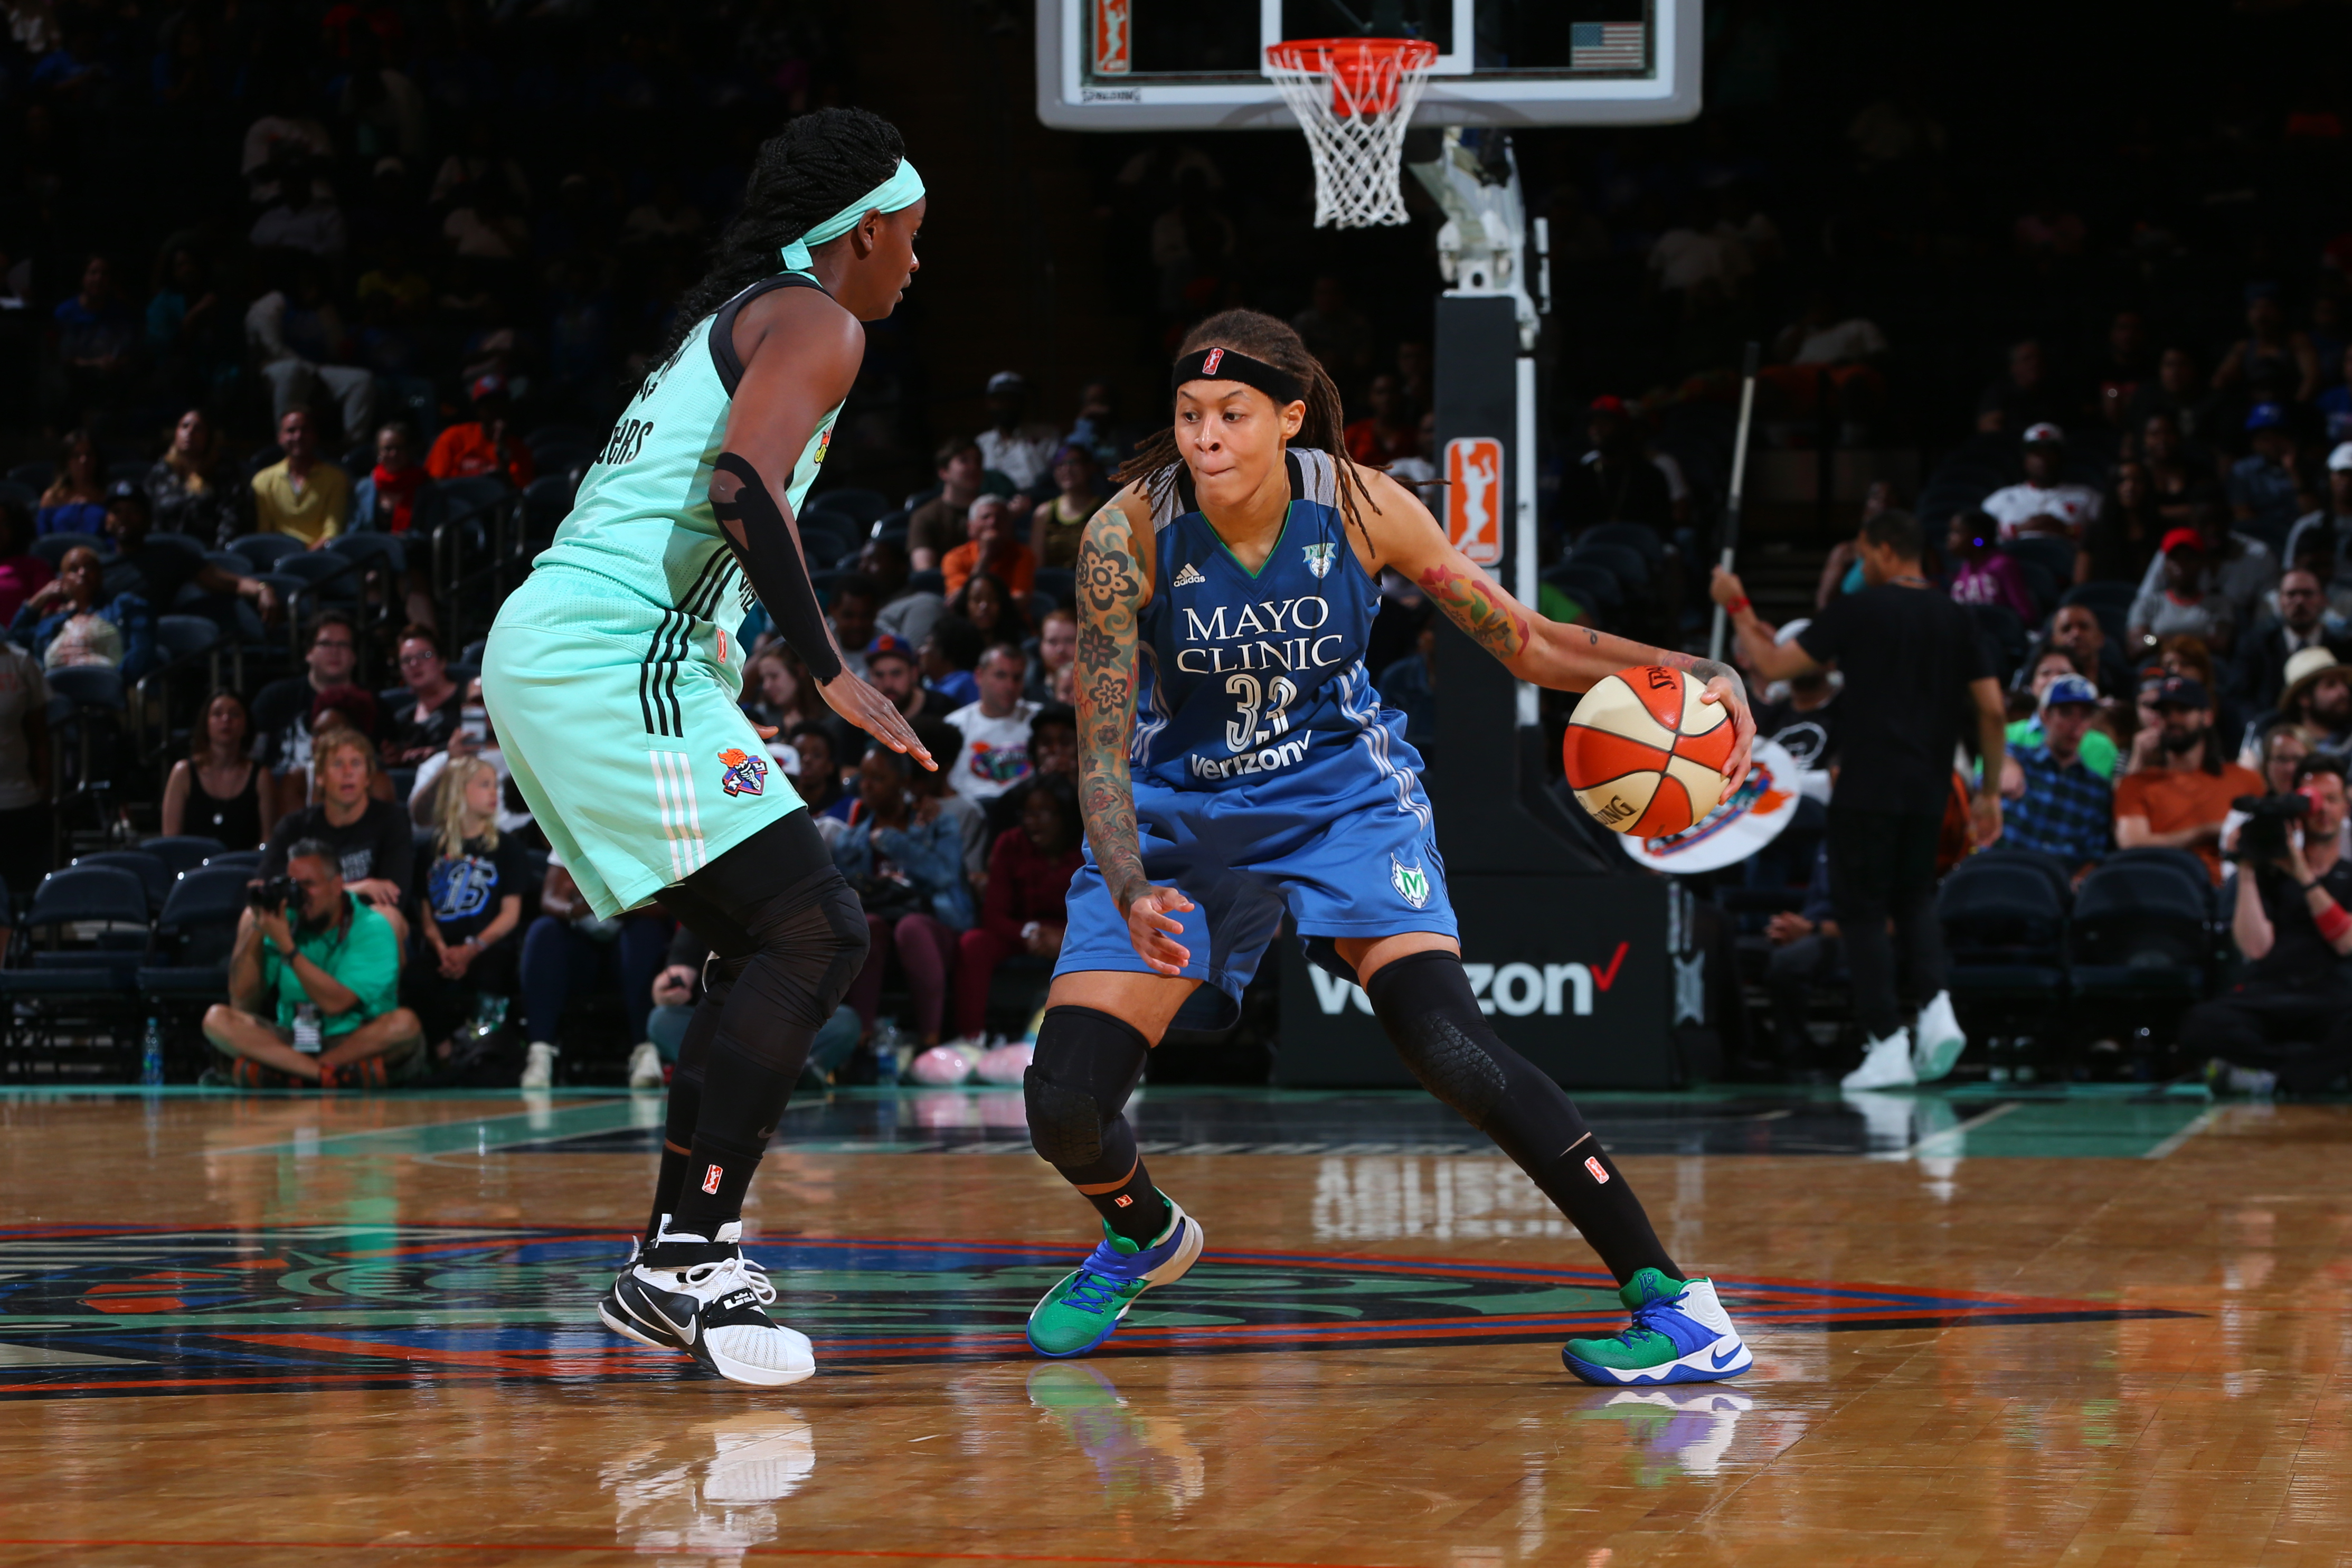 NEW YORK, NY - MAY 31: Seimone Augustus #33 of the Minnesota Lynx defends the ball against the New York Liberty during the game on May 31, 2016 at Madison Square Garden in New York, New York. NOTE TO USER: User expressly acknowledges and agrees that, by downloading and or using this Photograph, user is consenting to the terms and conditions of the Getty Images License Agreement. Mandatory Copyright Notice: Copyright 2016 NBAE (Photo by Mike Stobe/NBAE via Getty Images)